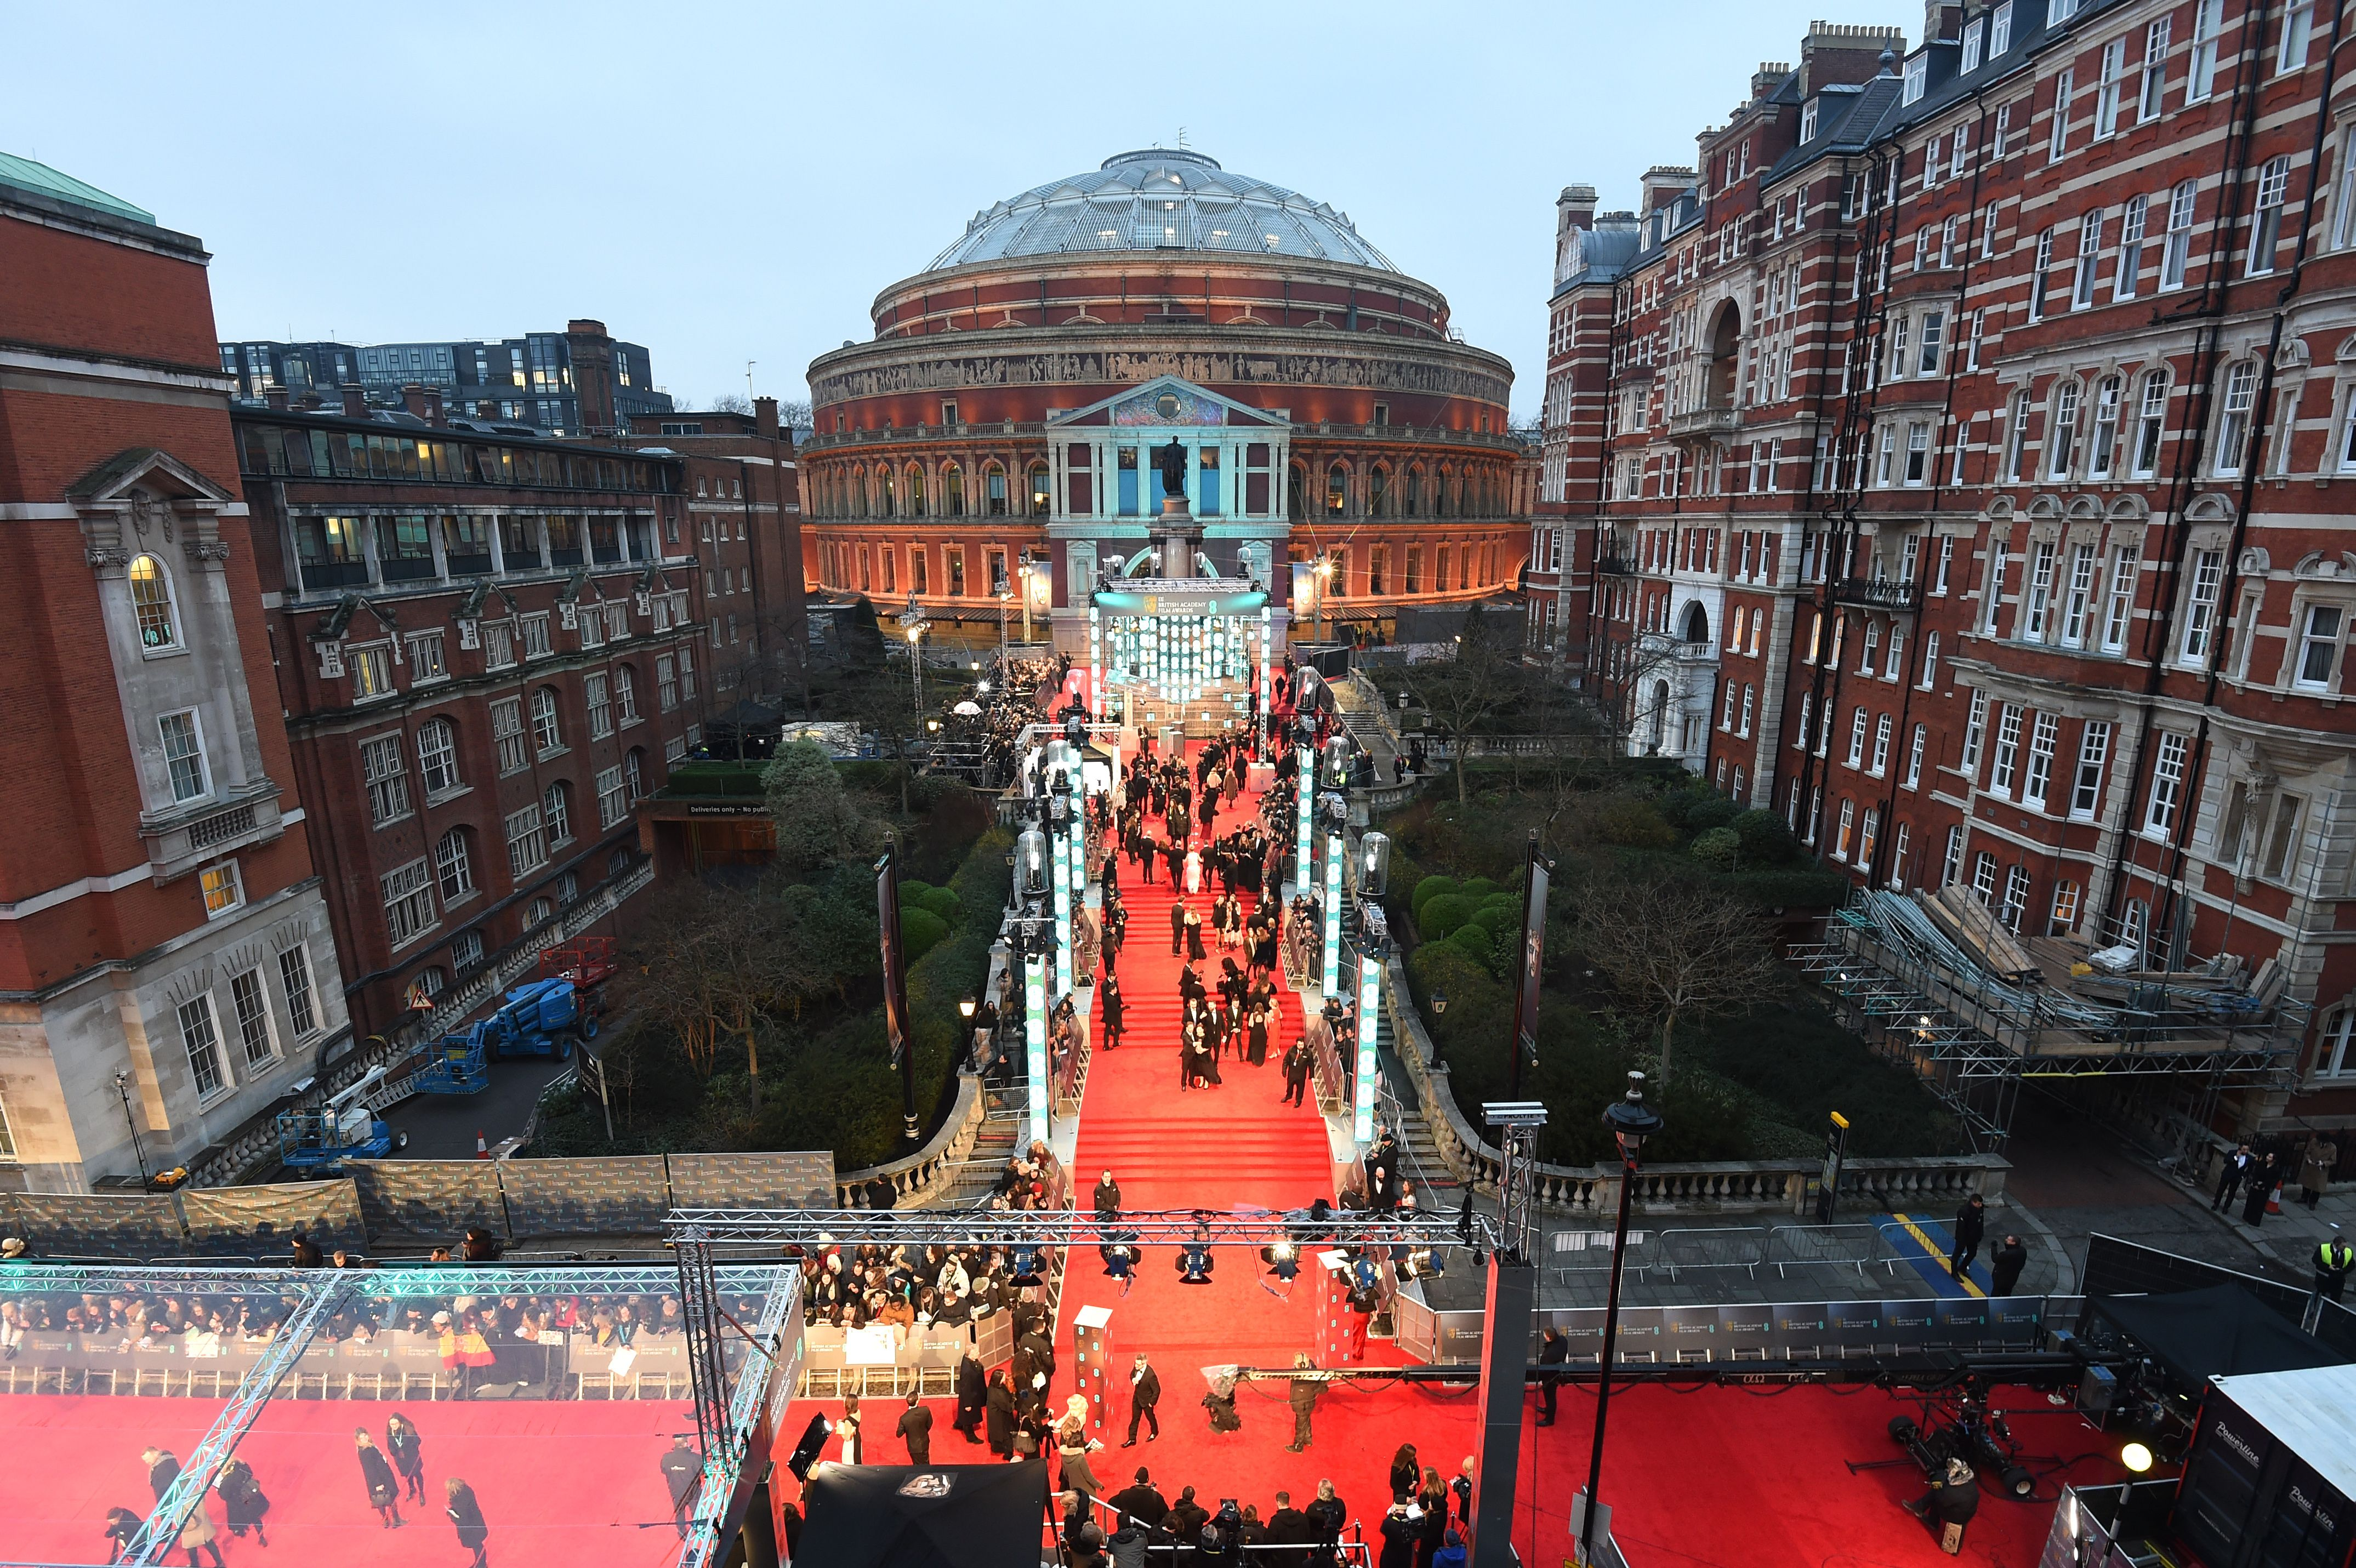 The atmosphere on the red carpet at the BAFTA Film Awards 2017